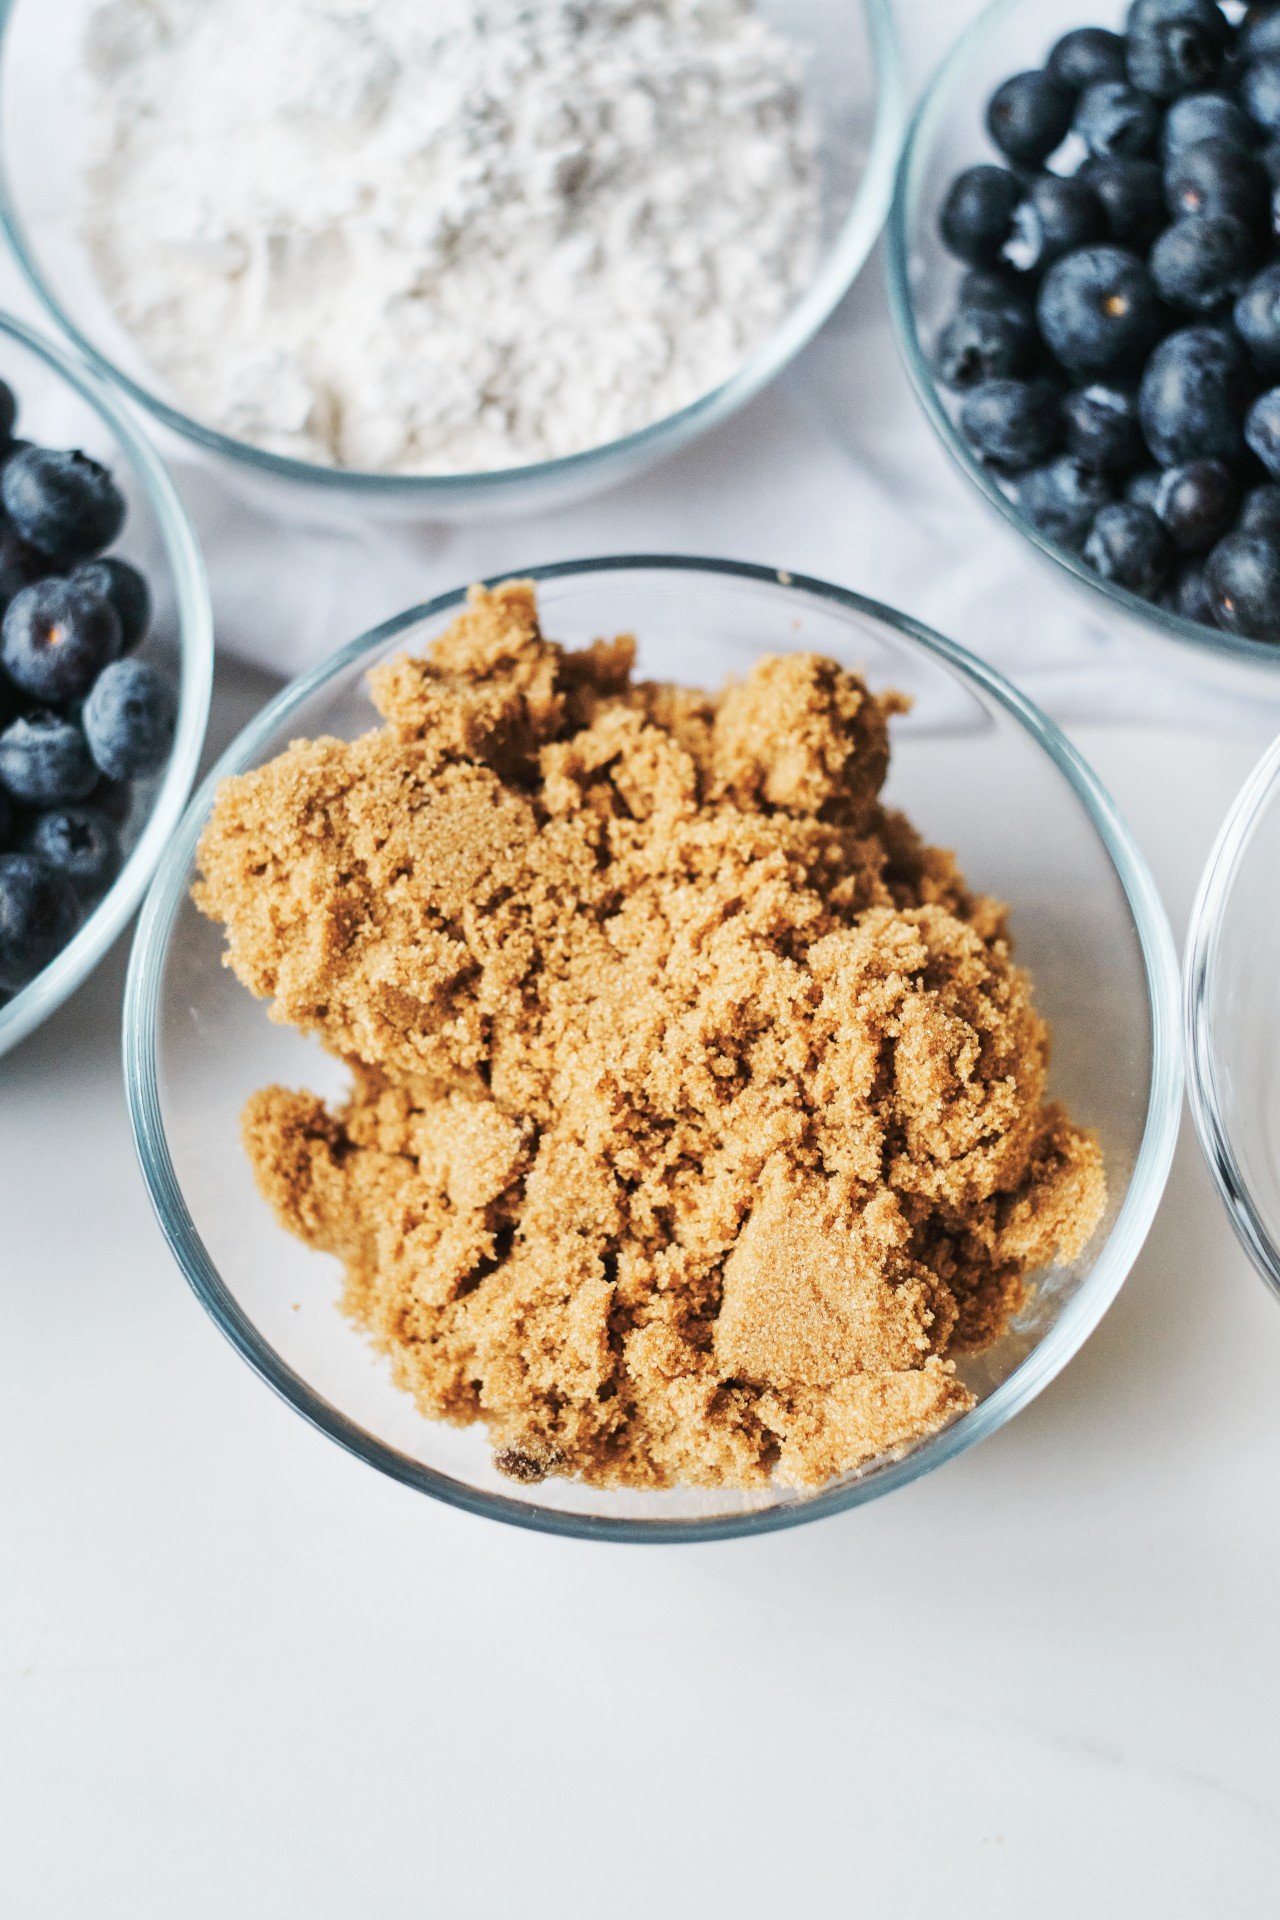 A close up of the brown sugar in the Blueberry Crumble Pie recipe.